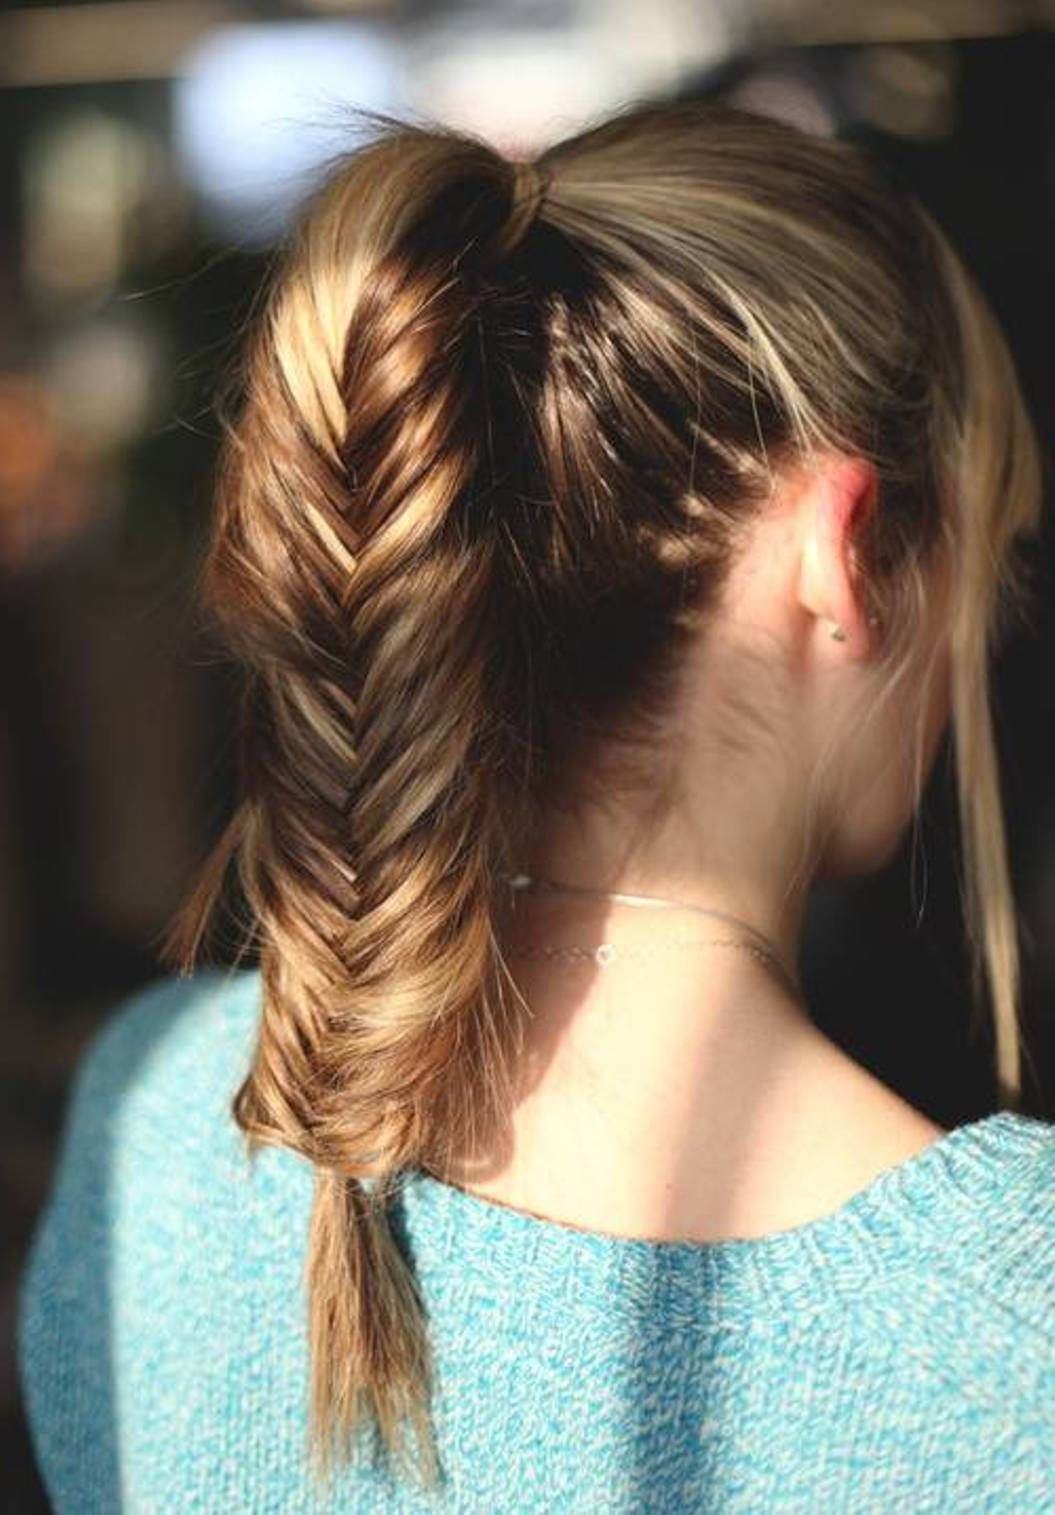 20 ponytail hairstyles for all hair lengths | ponytail, pony